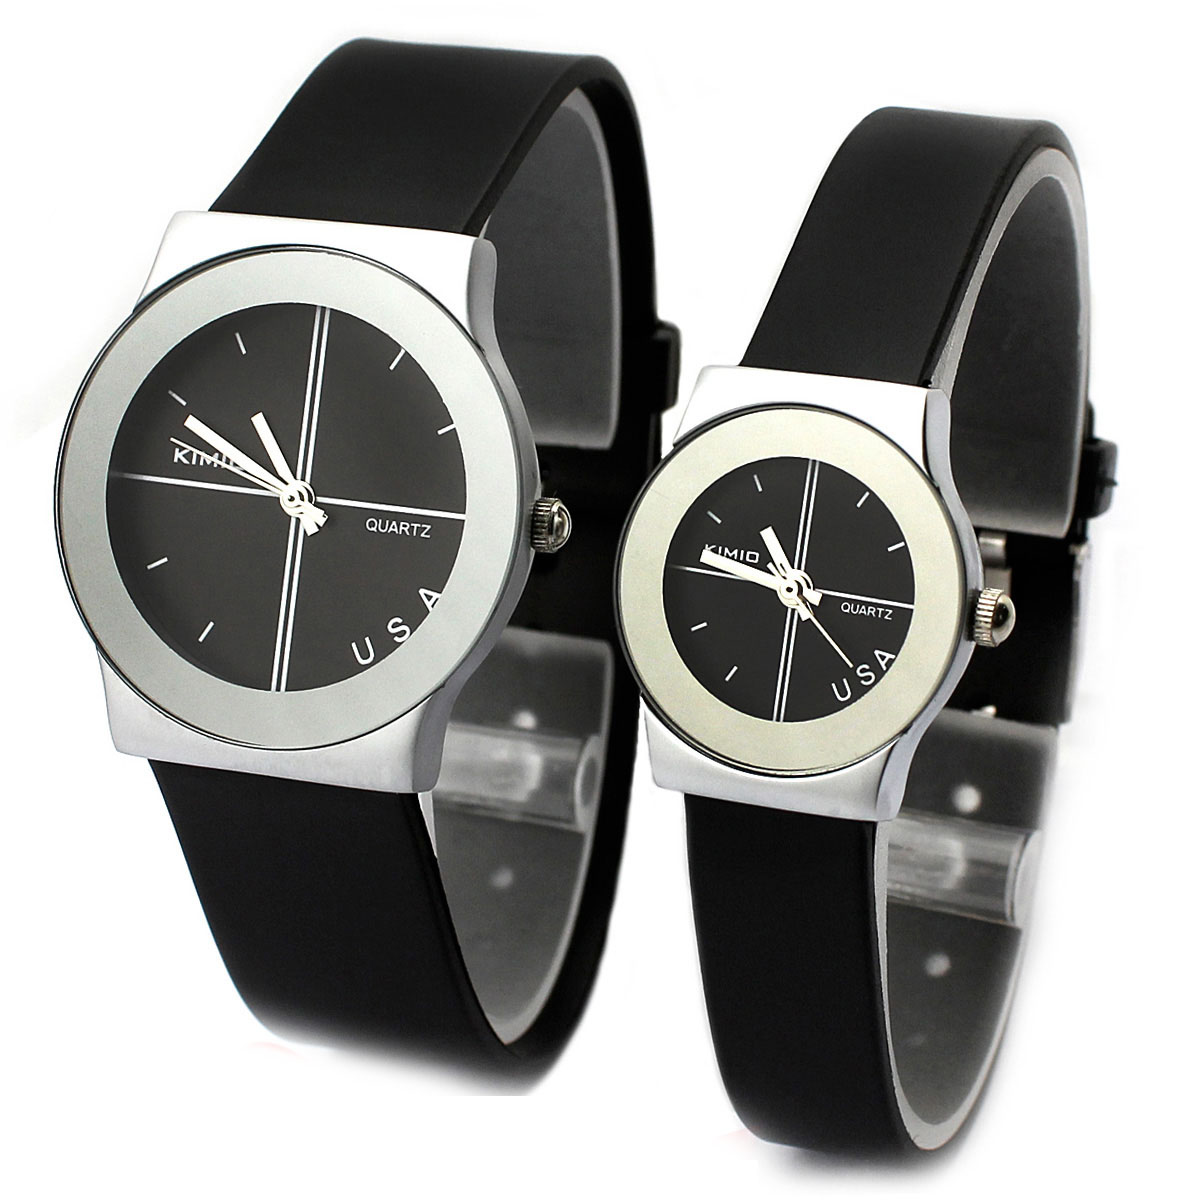 Couple Watches Are One Of The Most Beautiful Symbols Togetherness